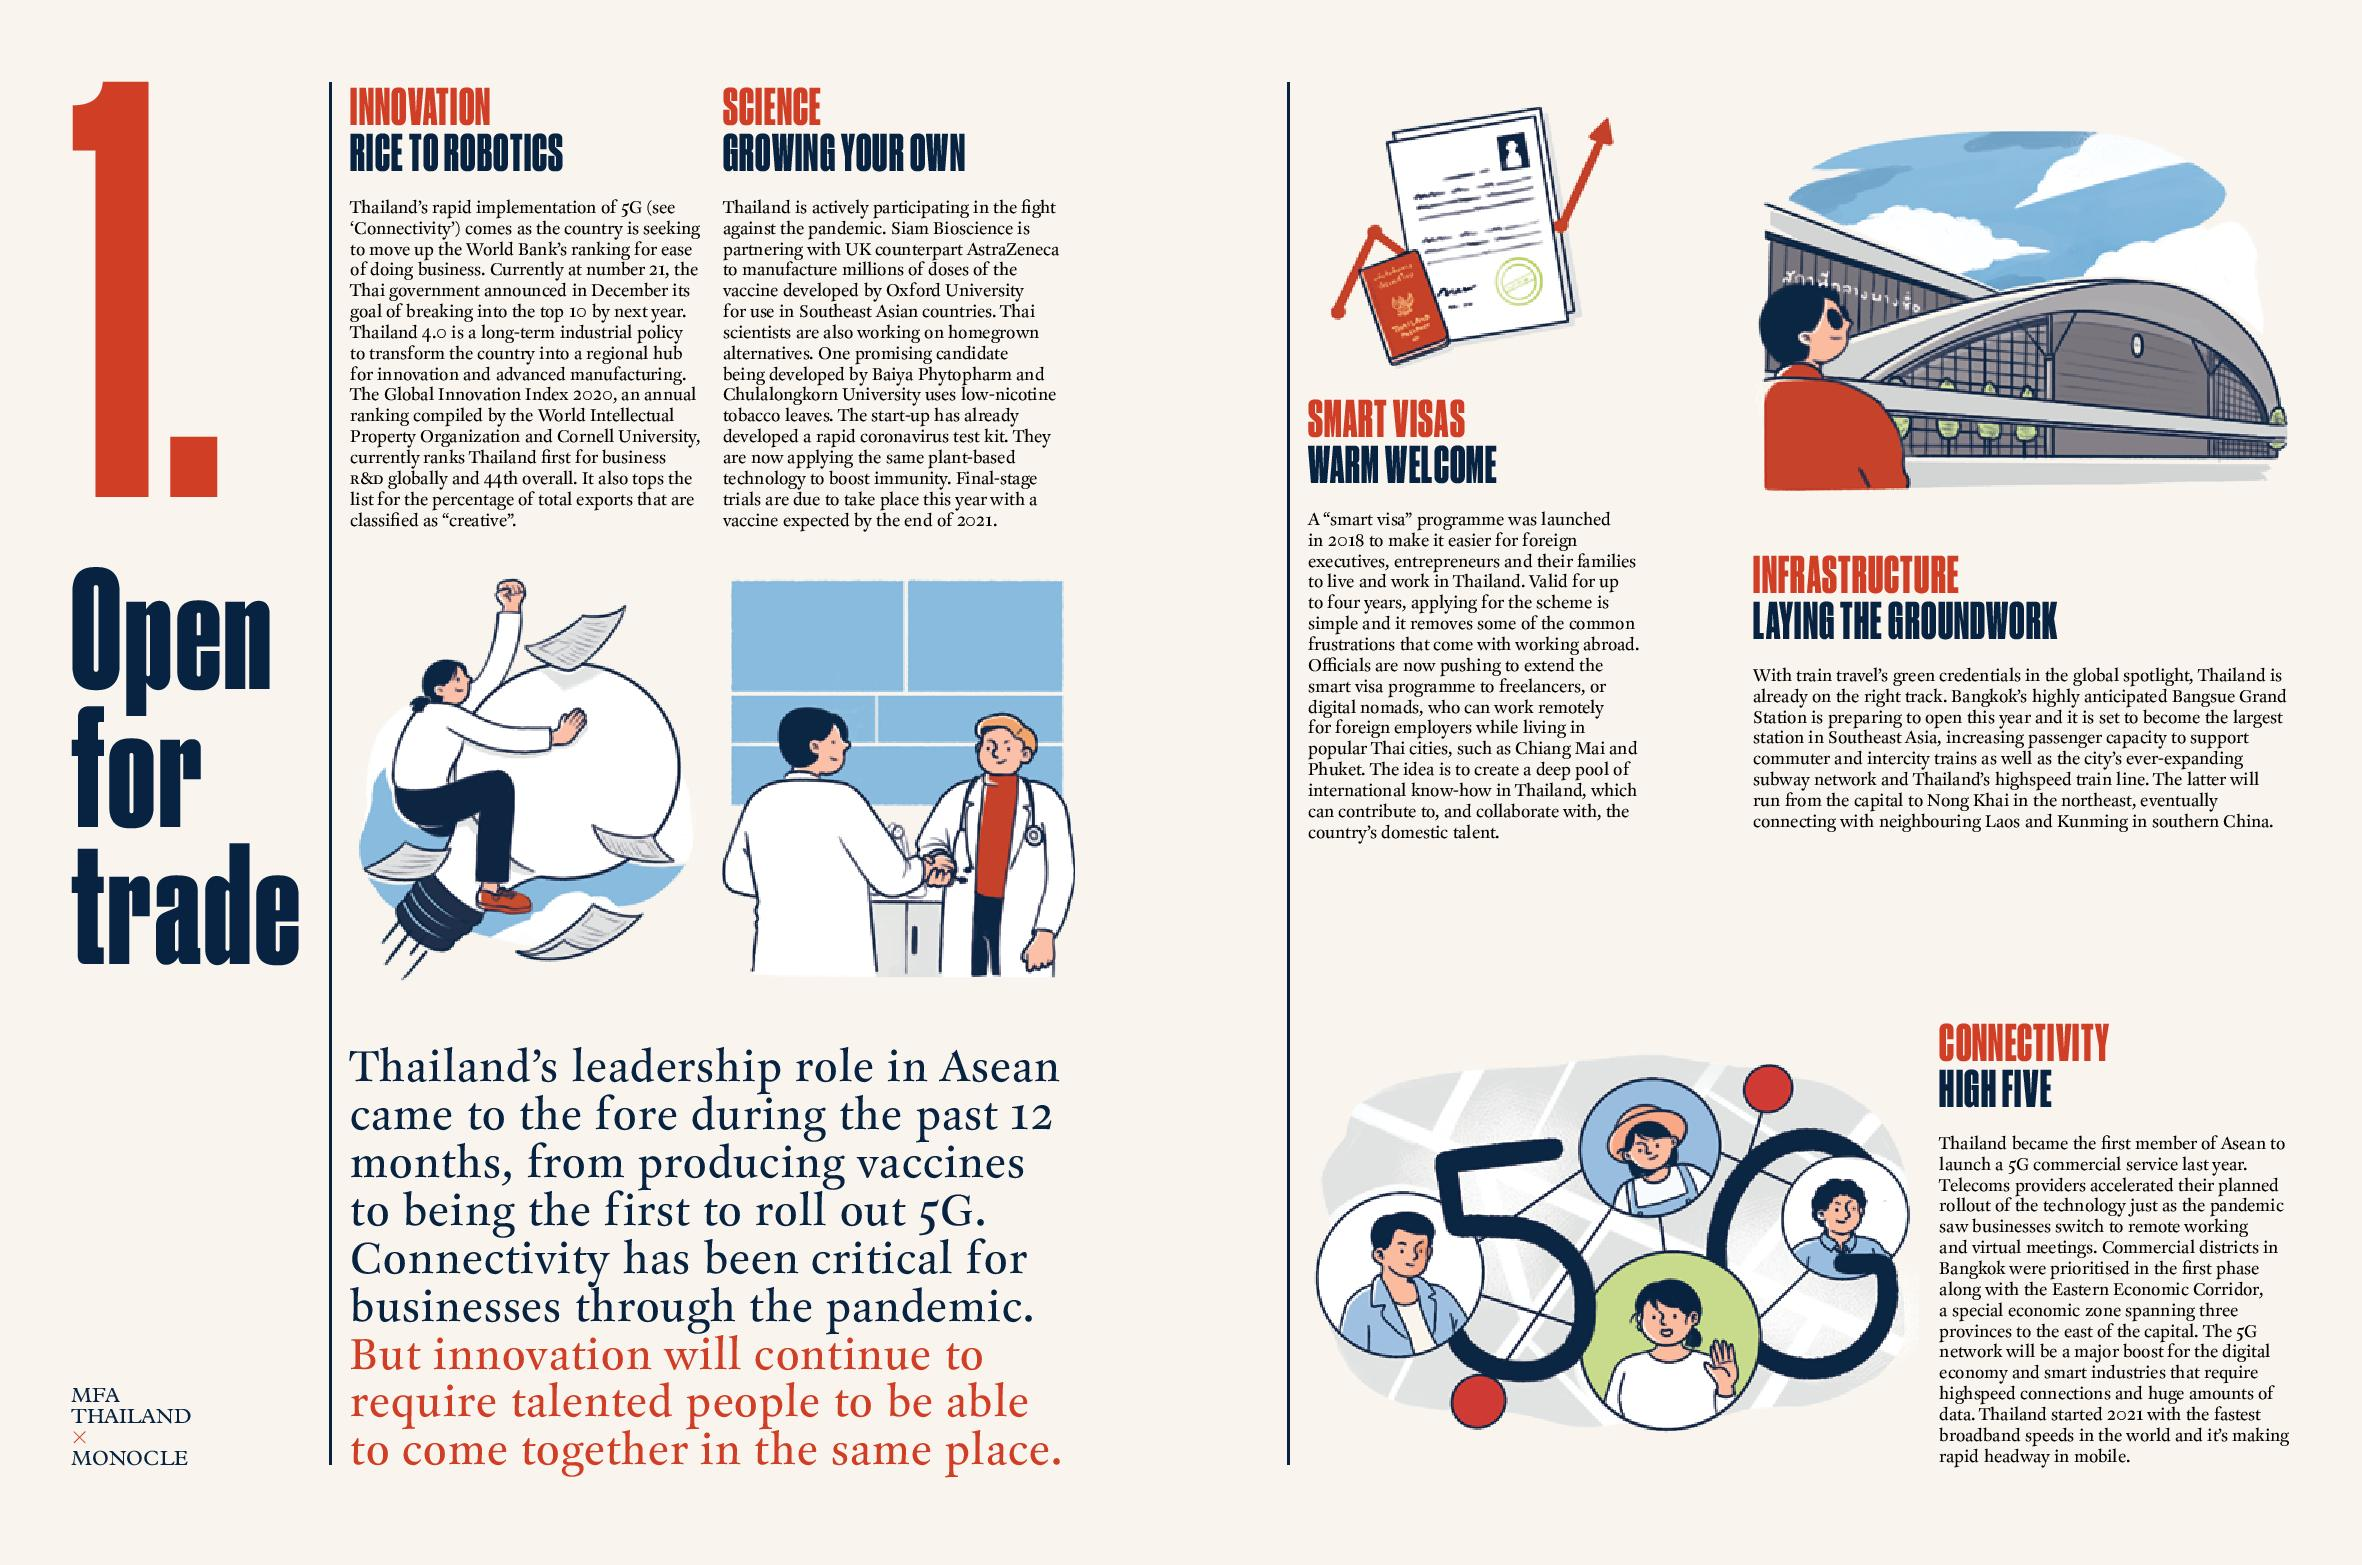 Monocle_x_MFA_Thailand___March_2021_final-page-002